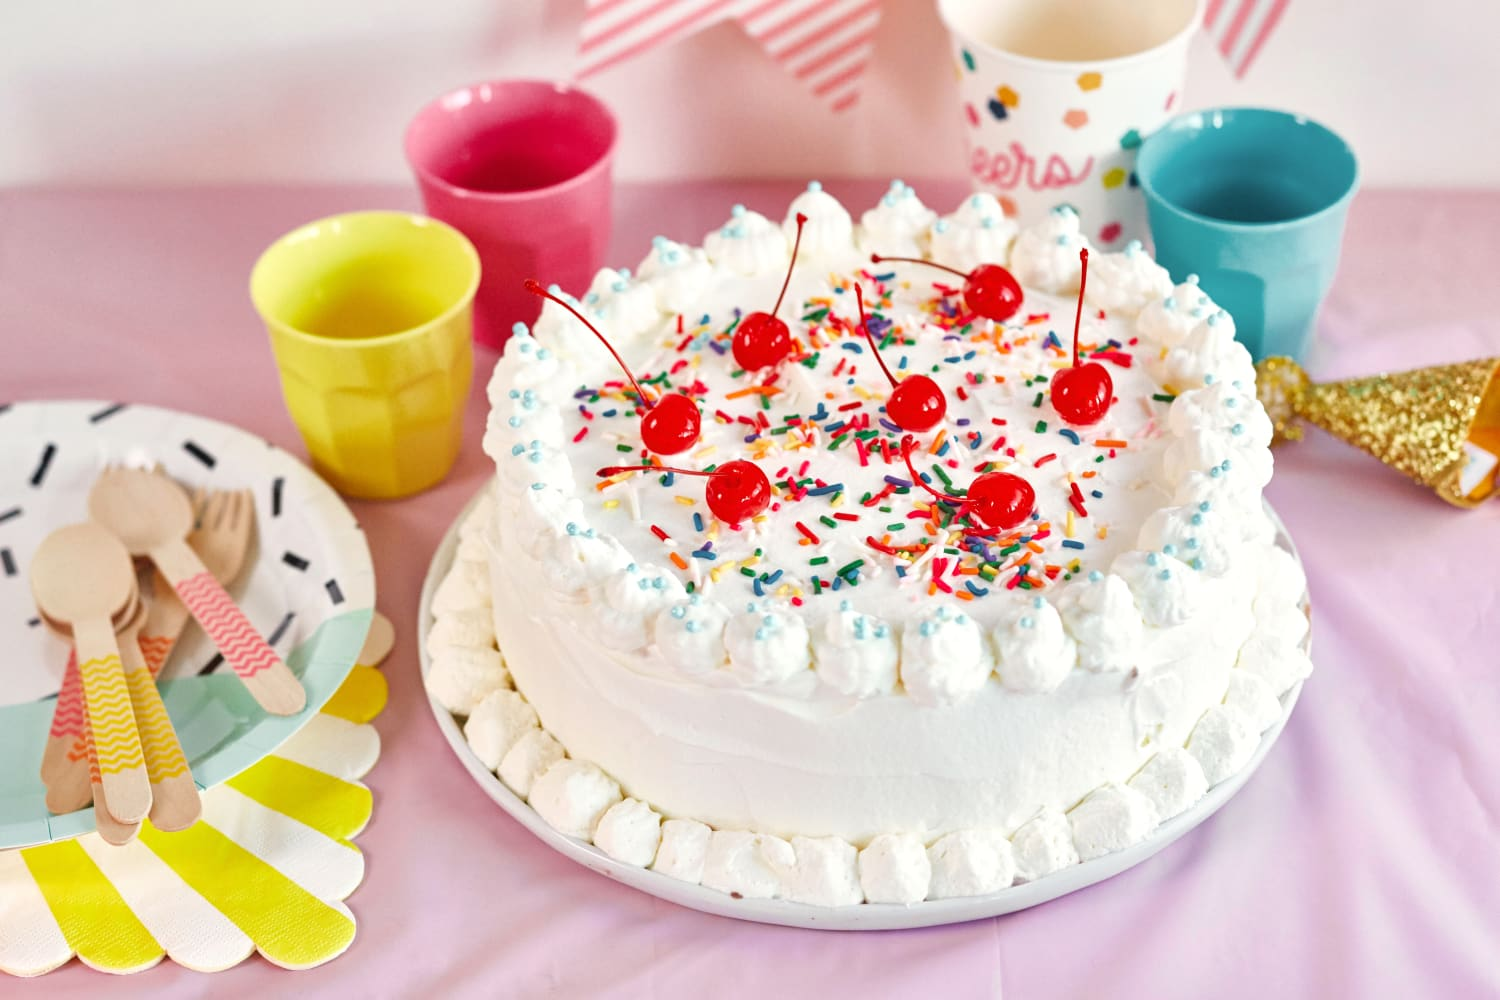 How To Make an Ice Cream Cake (Even Better than Dairy Queen!)